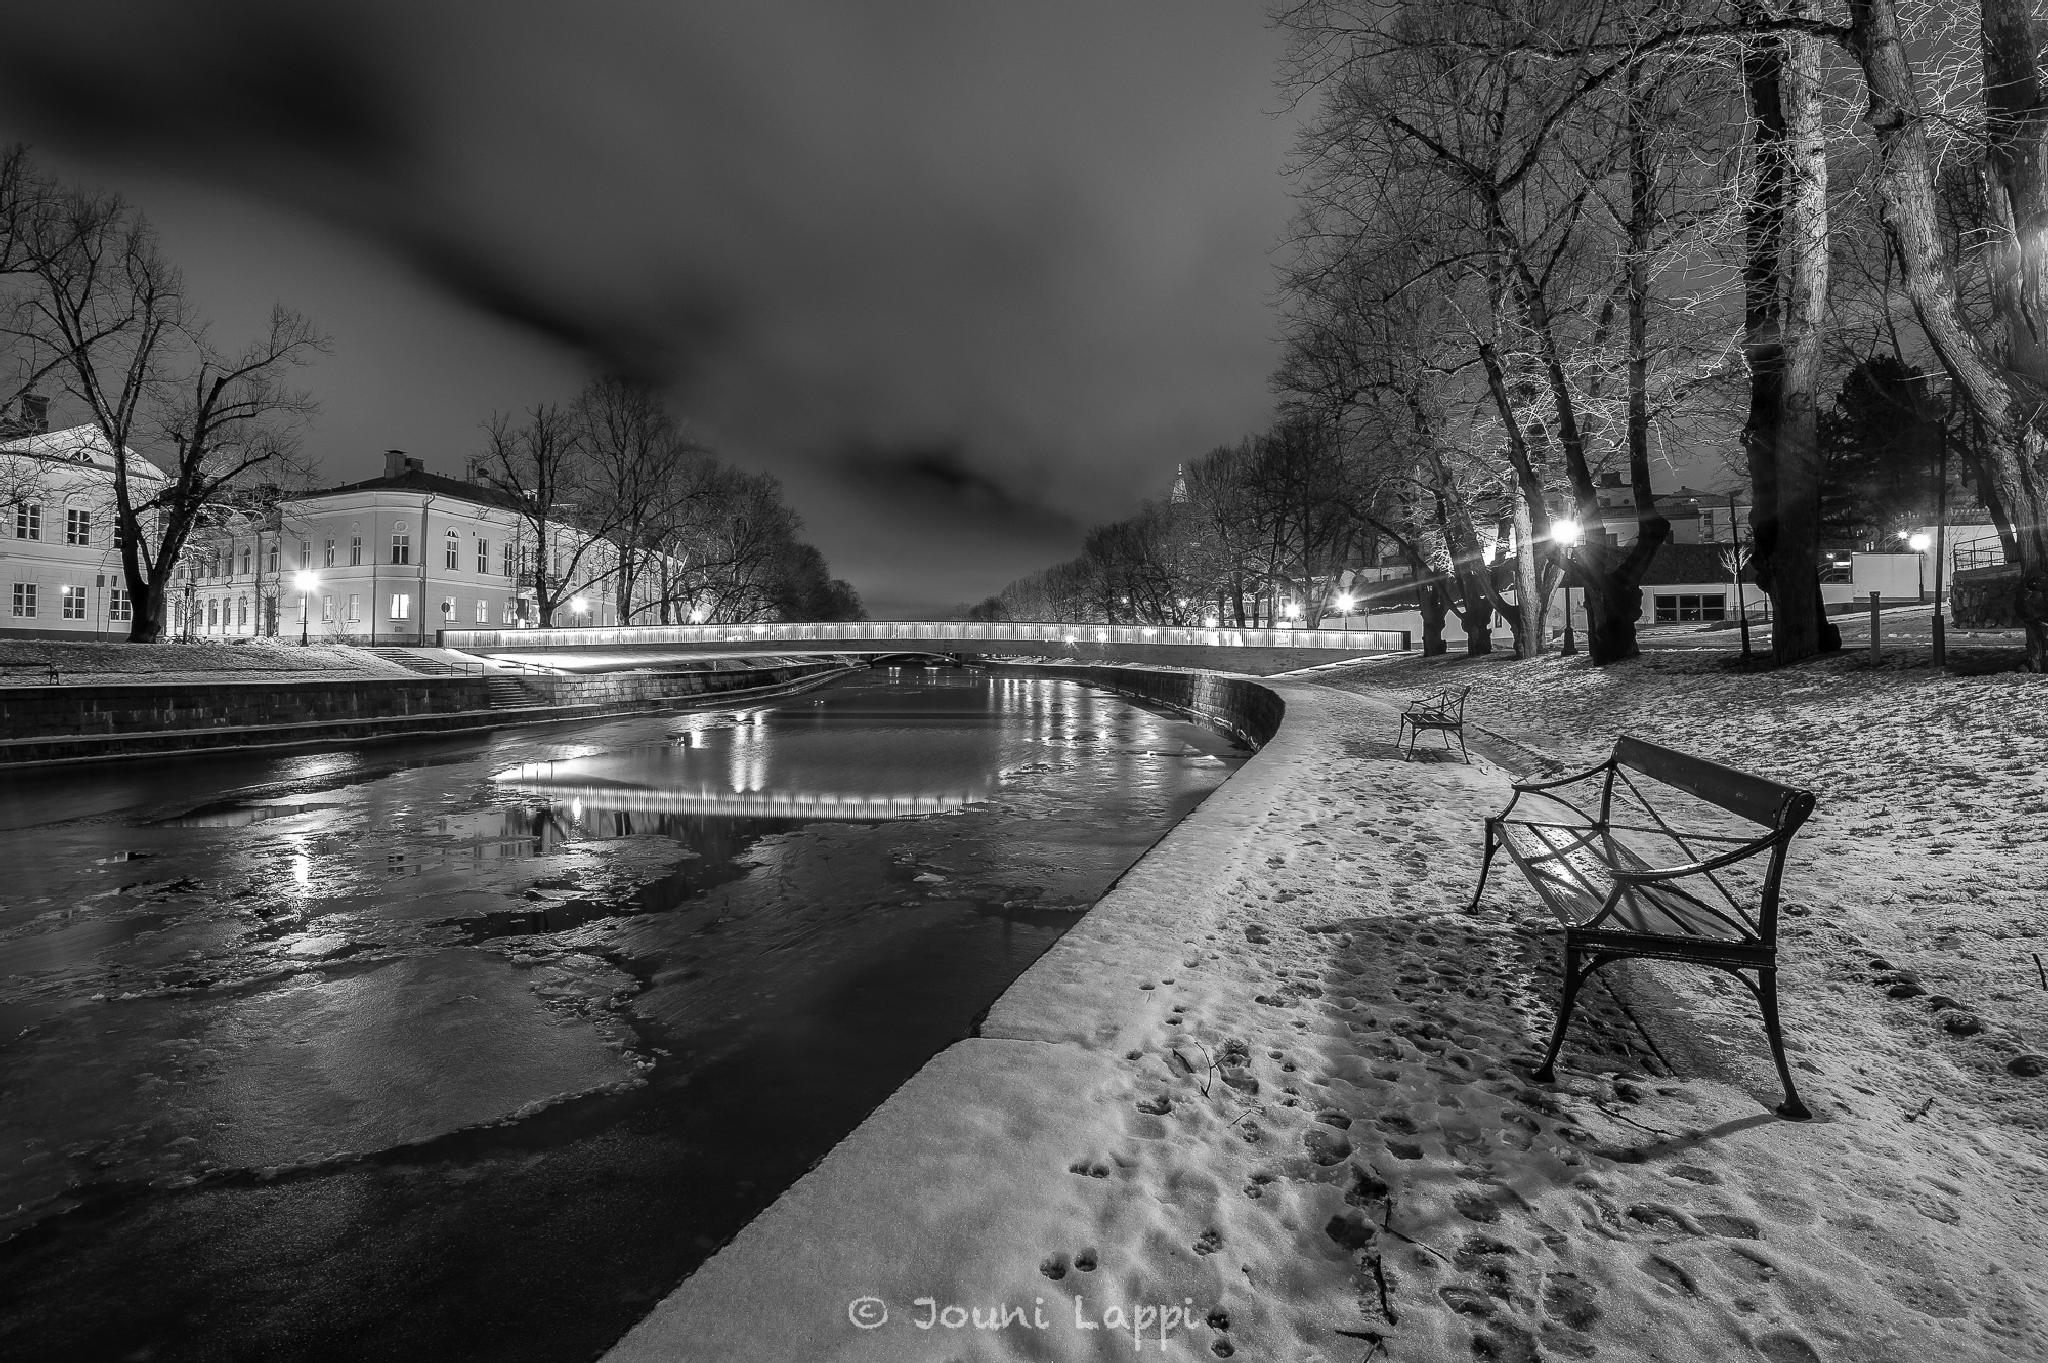 The river Aura and the Library bridge by night by Jouni Lappi